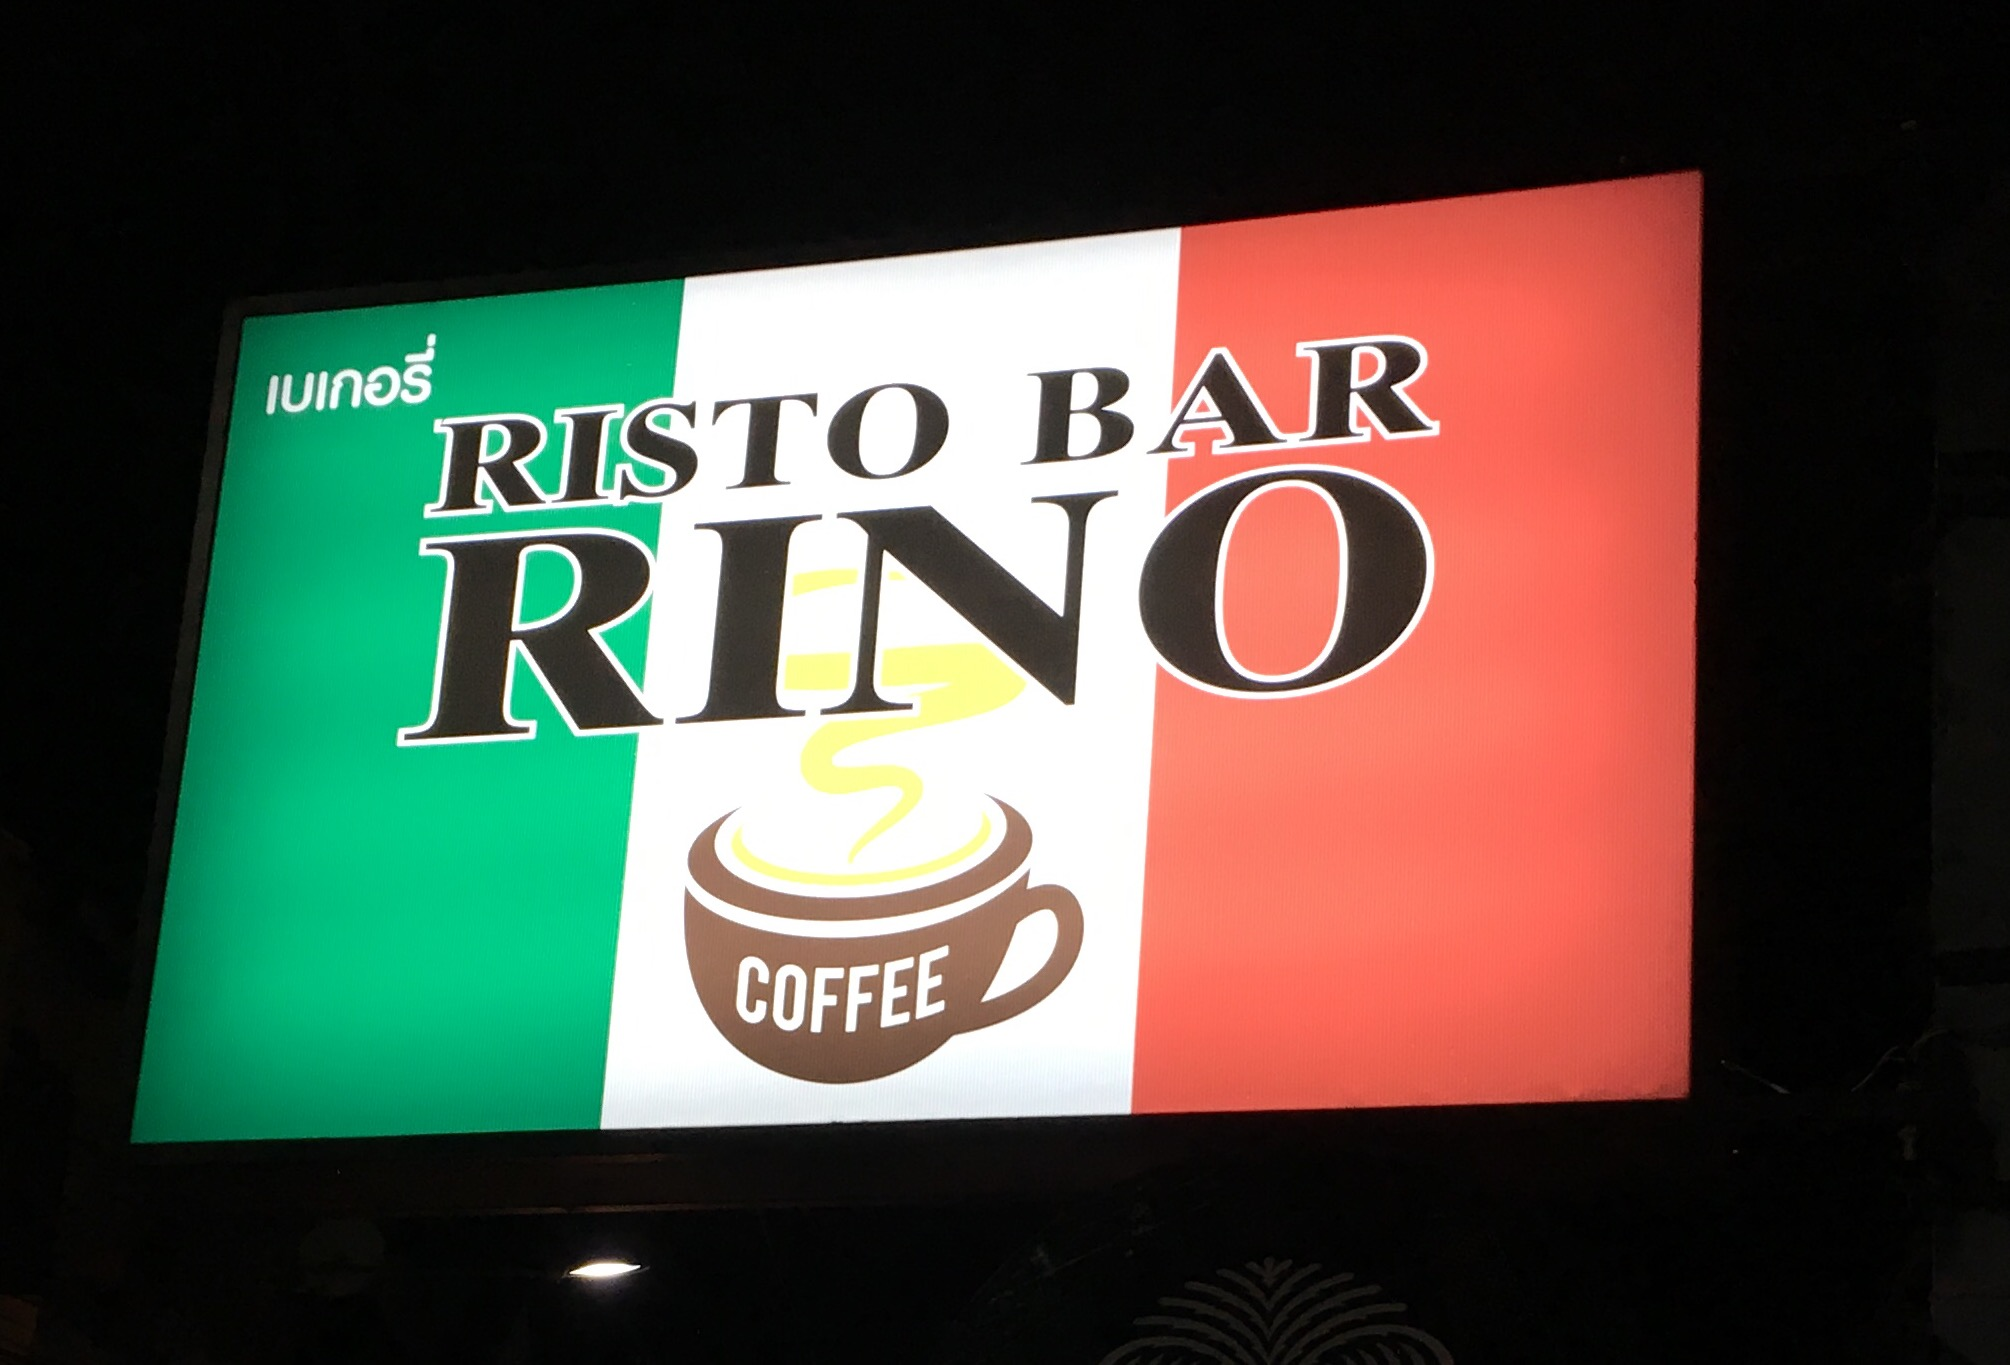 Risto Bar RINO